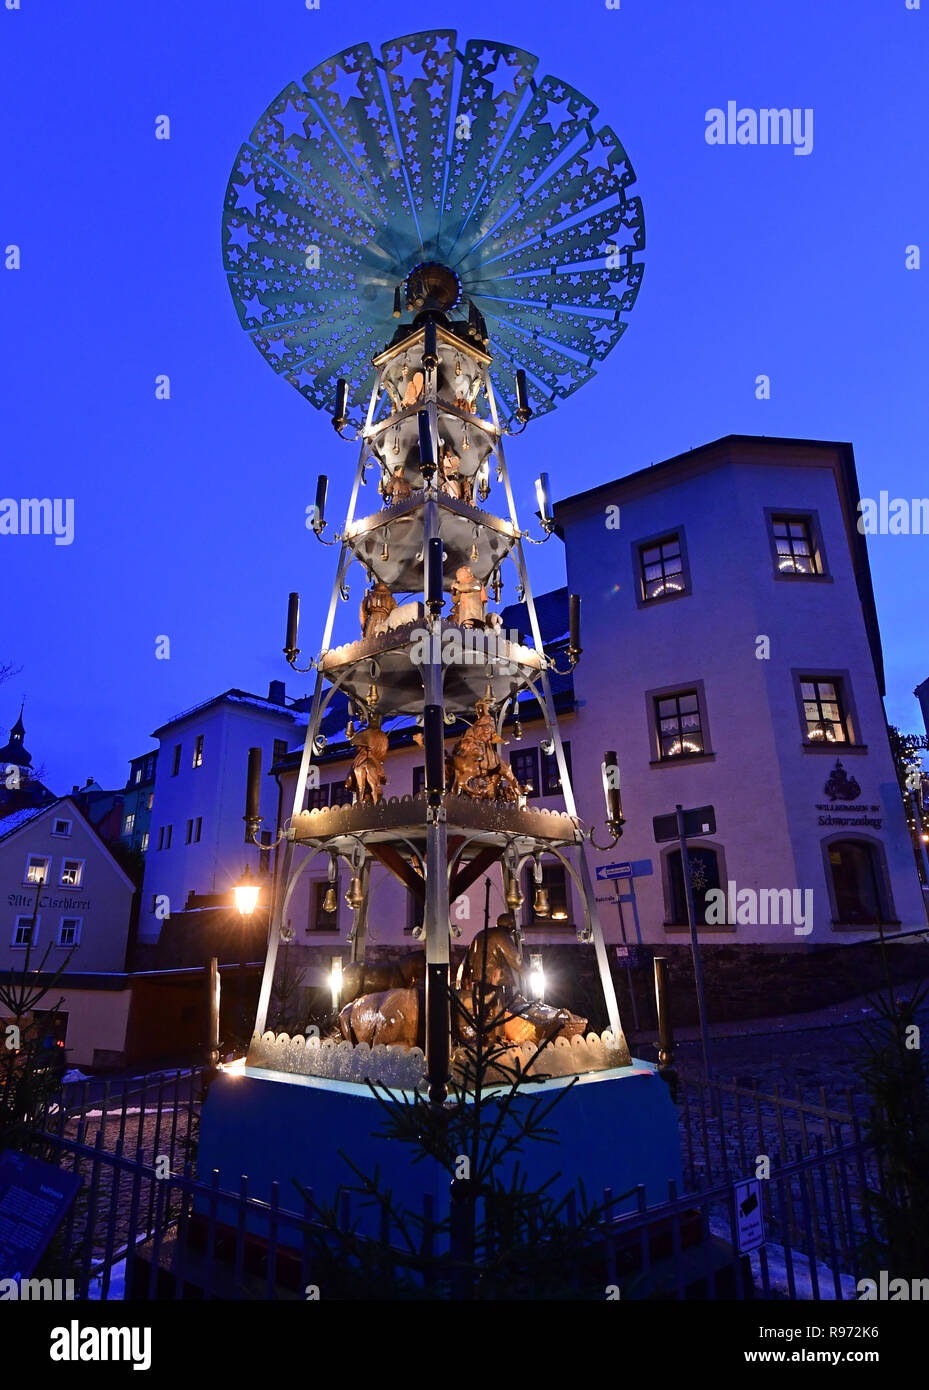 Schwarzenberg, Germany. 20th Dec, 2018. The so-called Krauß pyramid rotates in the old town of Schwarzenberg in the Erzgebirge. The Great Pyramid goes back to the patron of the Erzgebirge folk art Friedrich Emil Krauß. The pyramid, more than seven metres high, was first presented to the public in Aue in 1934. In the Erzgebirge it is regarded as the oldest still preserved pyramid in the world. Credit: Hendrik Schmidt/dpa-Zentralbild/ZB/dpa/Alamy Live News - Stock Image